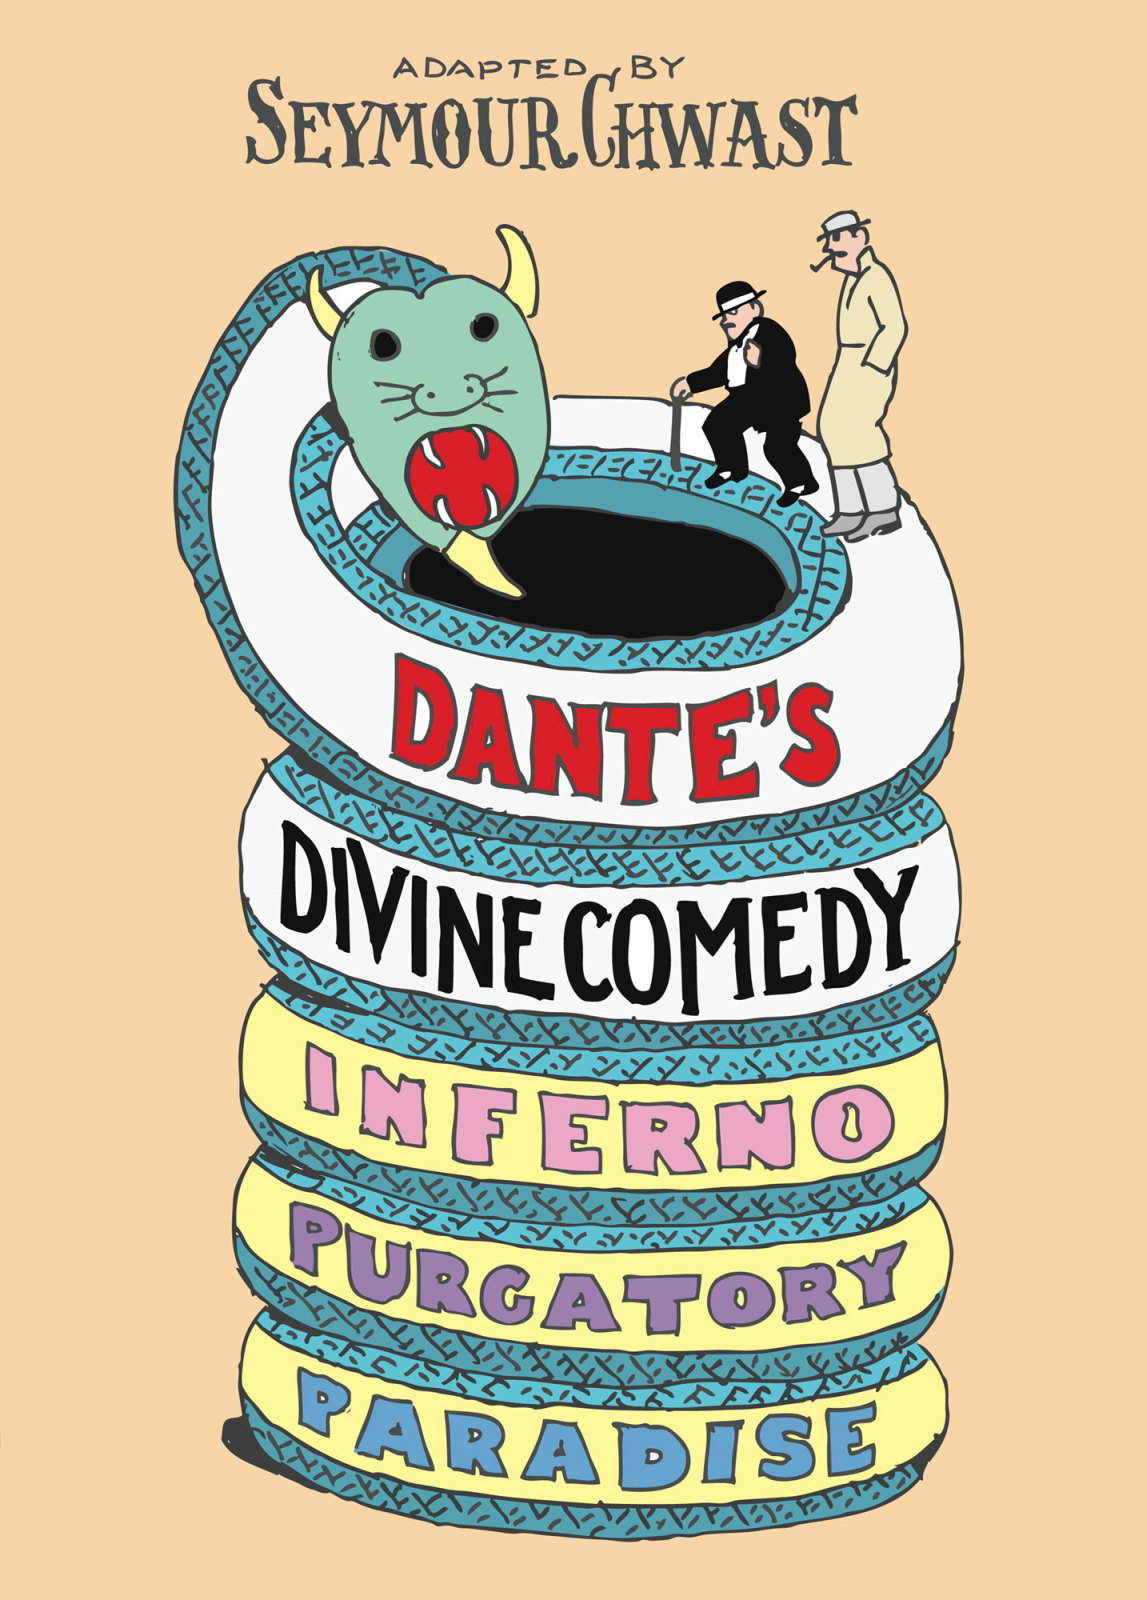 divine comedy essay Type of work: allegorical religious poemsetting hell, purgatory and paradise ad 1300 principal characters dante, the pilgrim virgil, the poet, and.